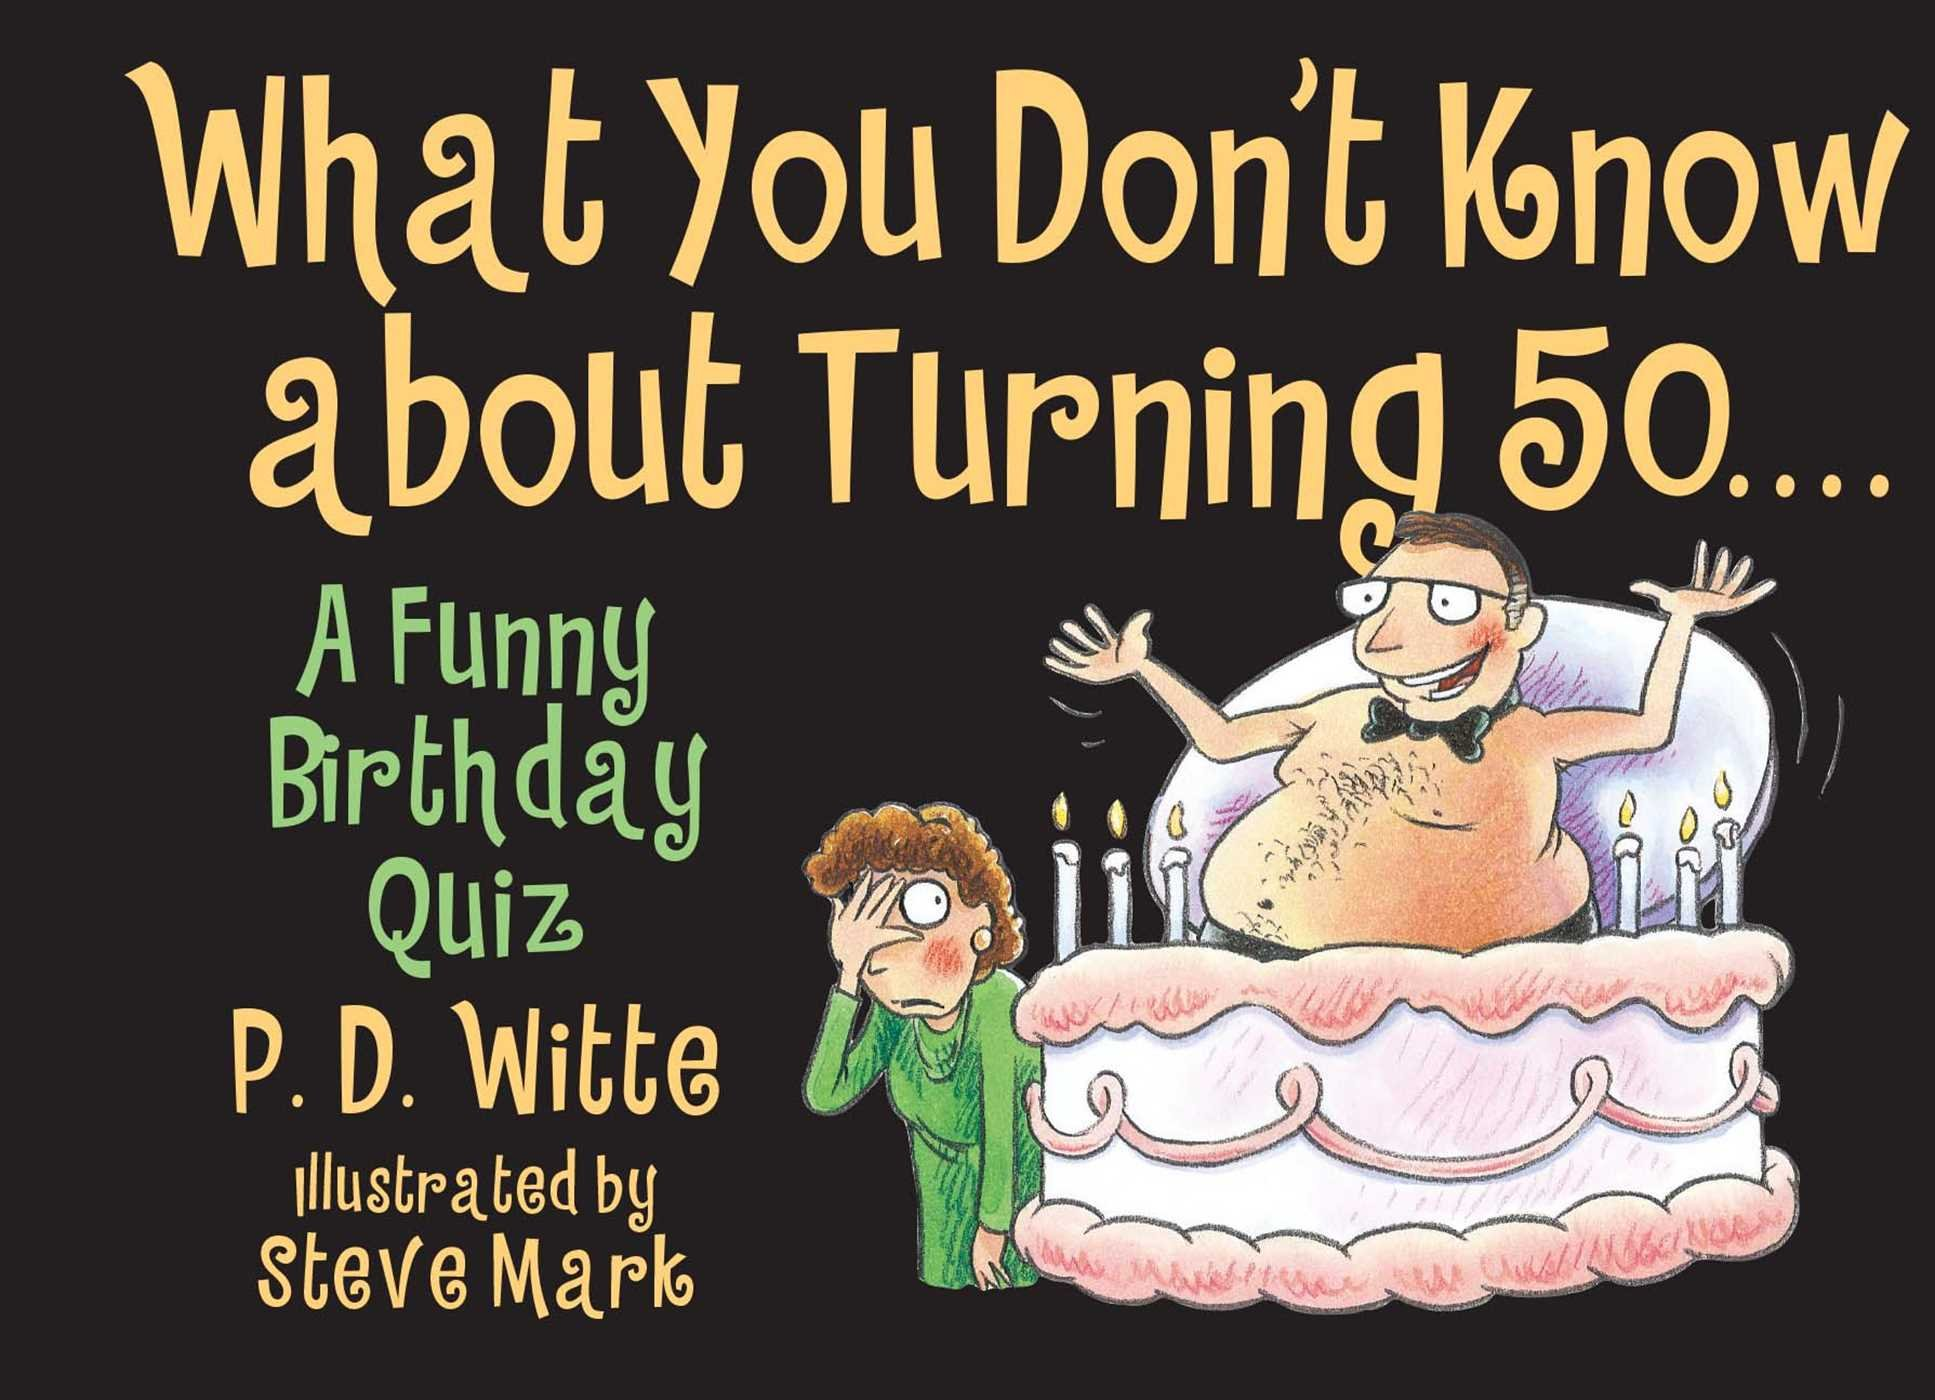 What You Don t Know About Turning 50 Phil Witte